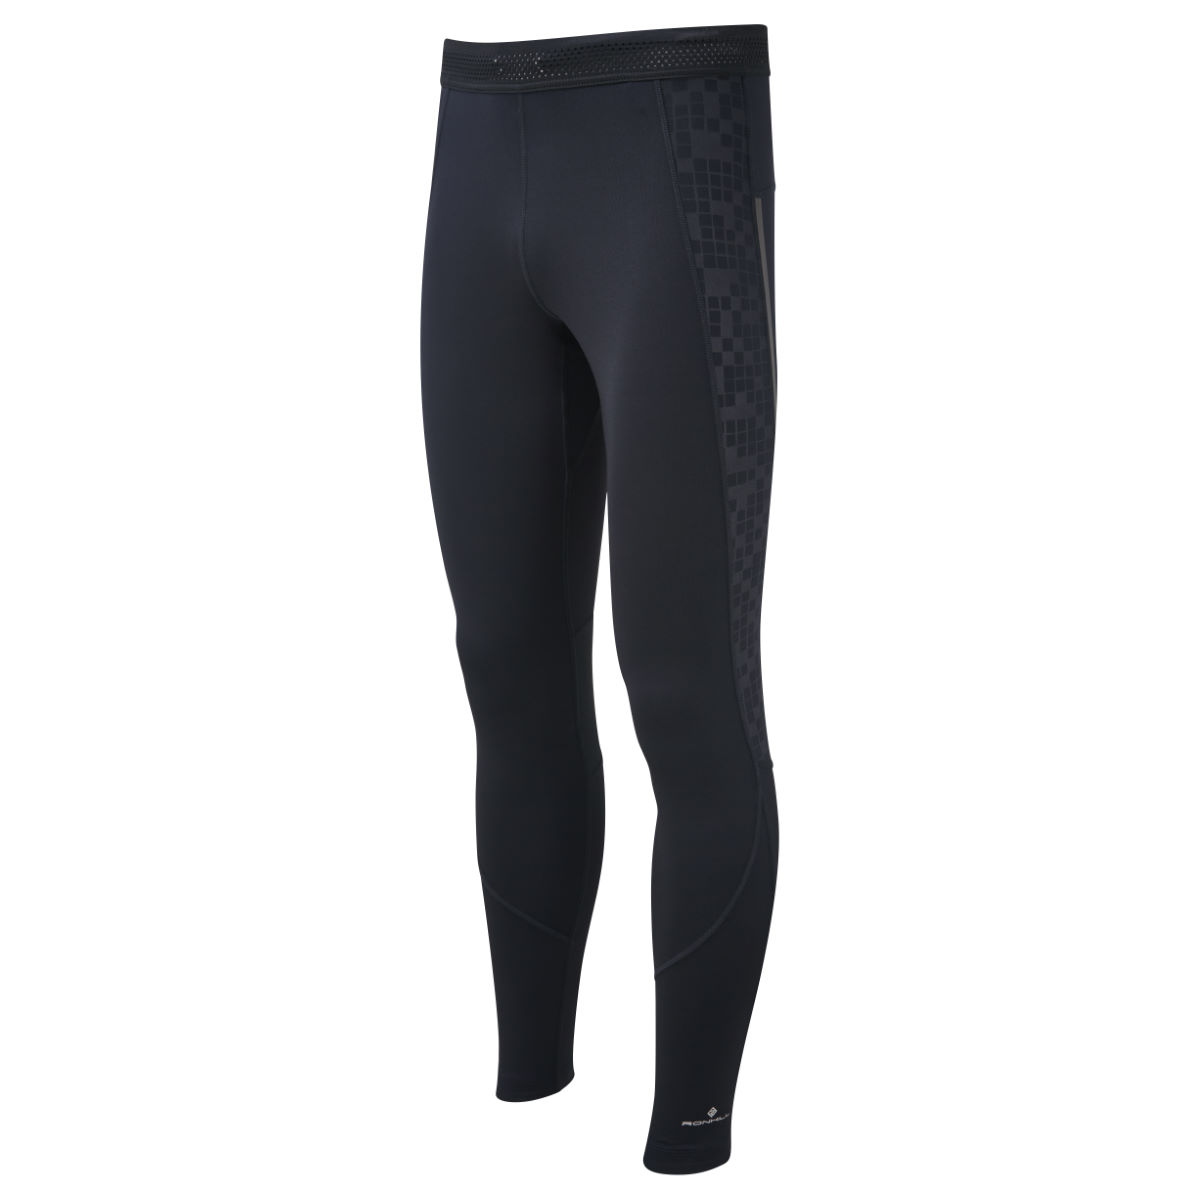 Ronhill Ronhill Stride Strech Tight   Tights